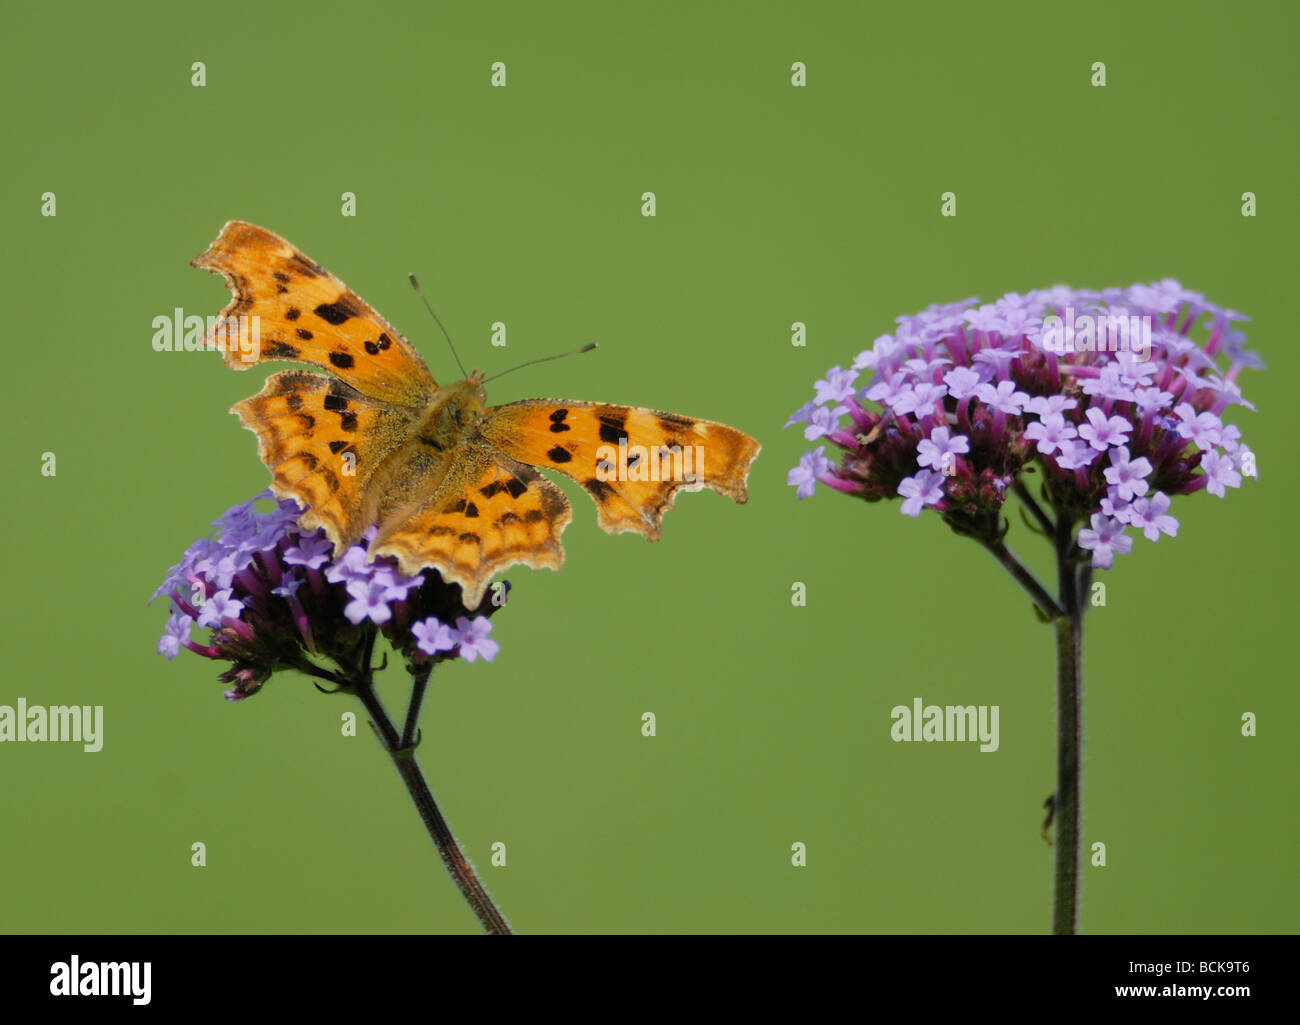 A comma butterfly (Polygonia c-album, Nymphalis c-album) with wings open showing orange markings feeds on Verbena Stock Photo